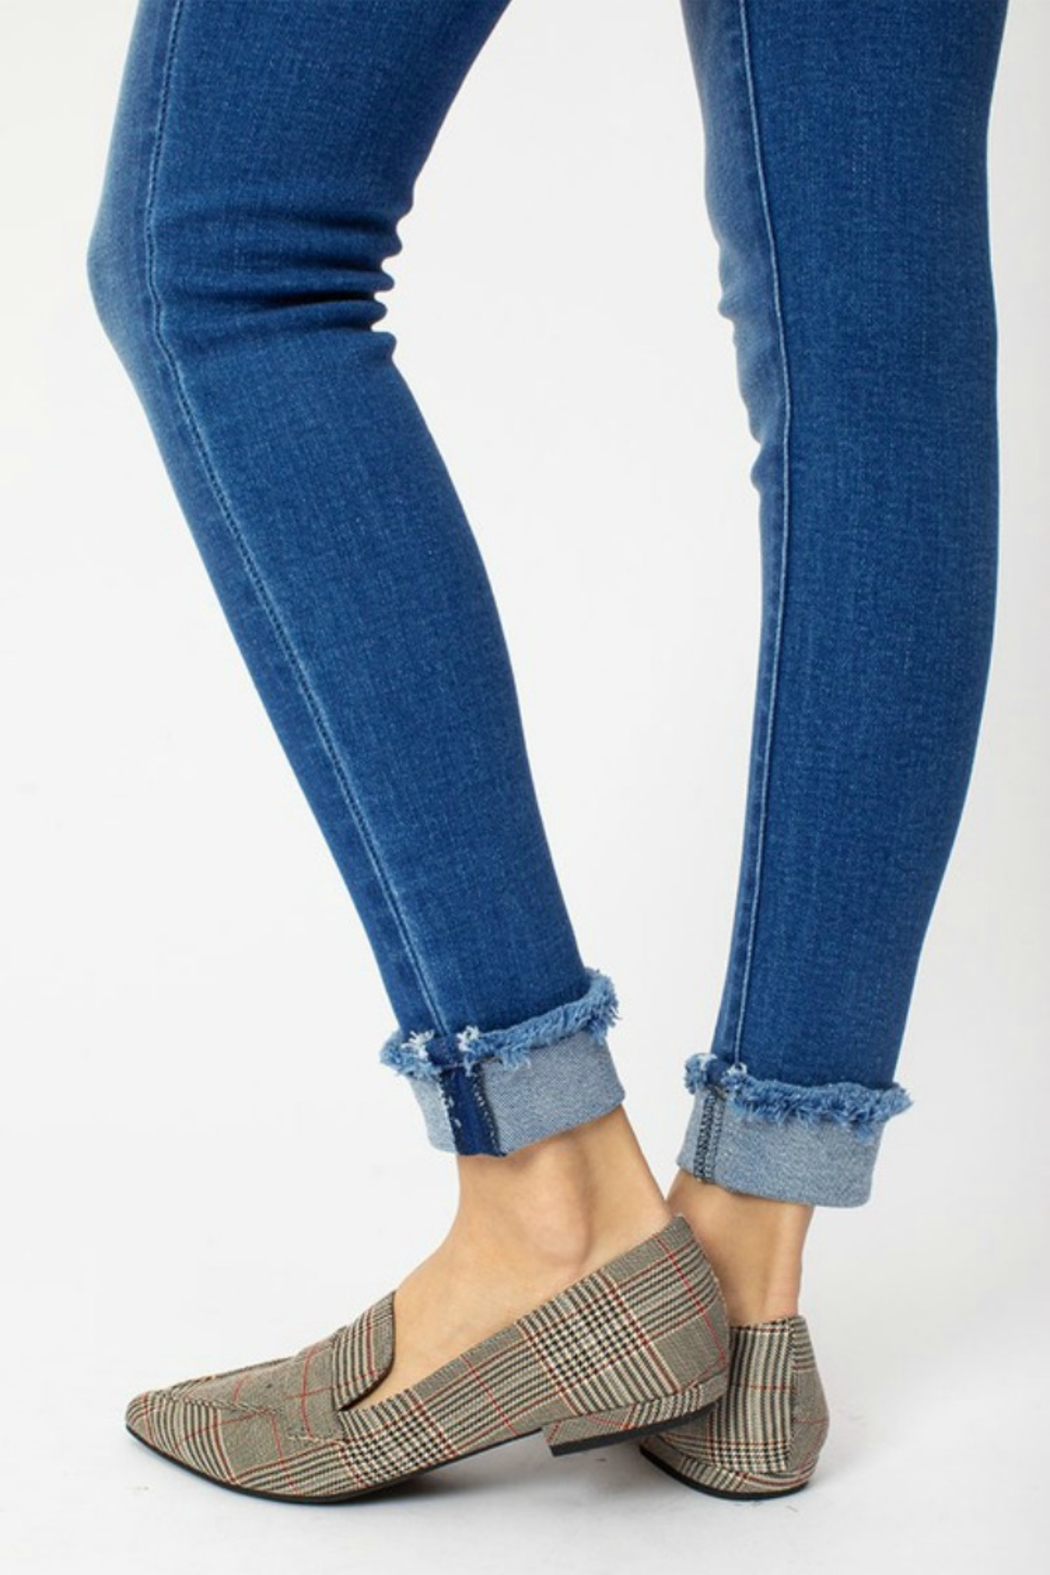 Kan Can WHITTNEY CUFF SKINNY - Back Cropped Image